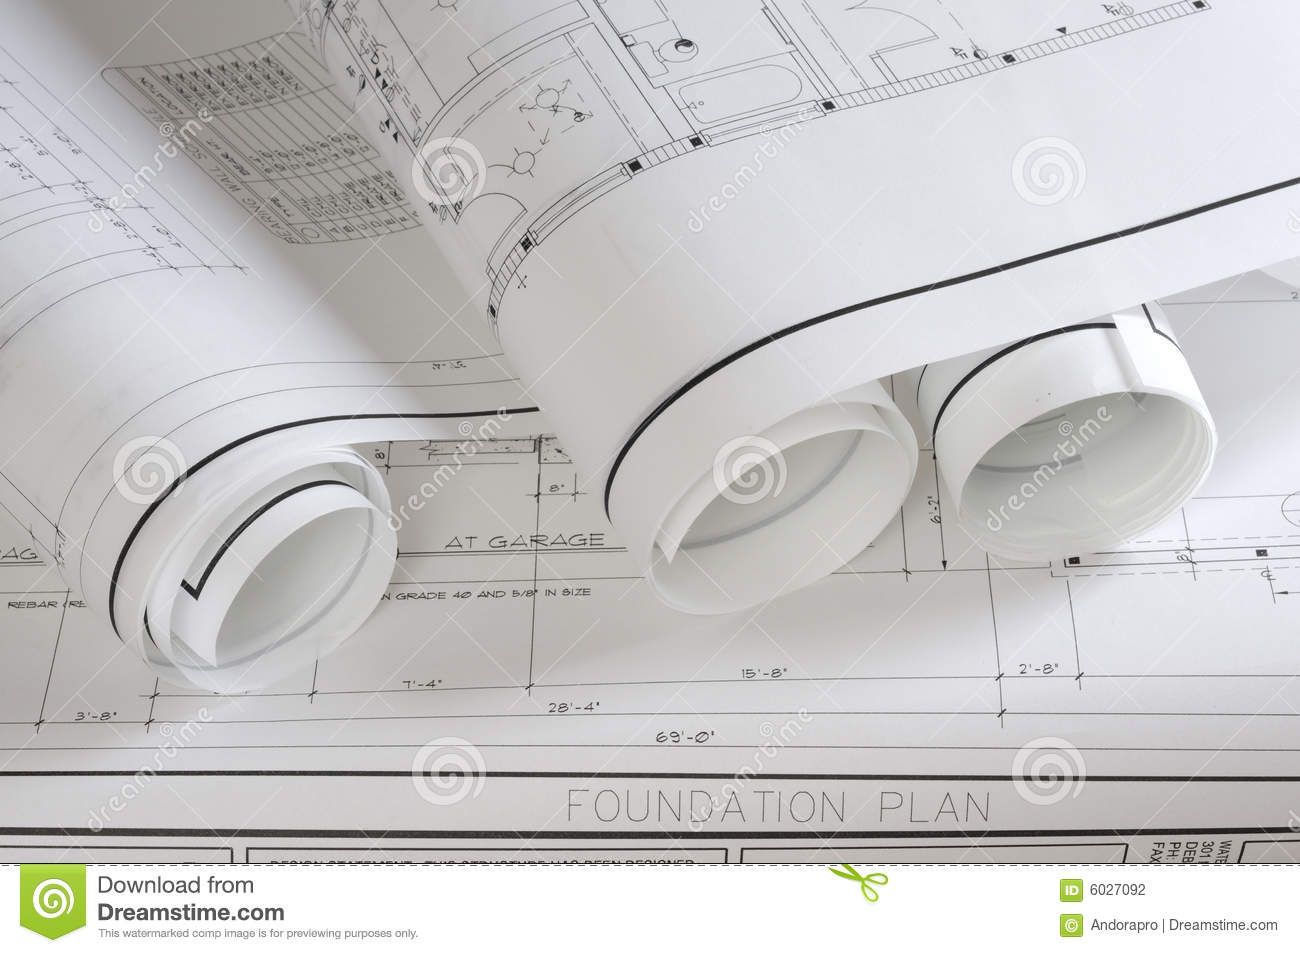 Blueprints stock photography image 6027092 for How to read foundation blueprints